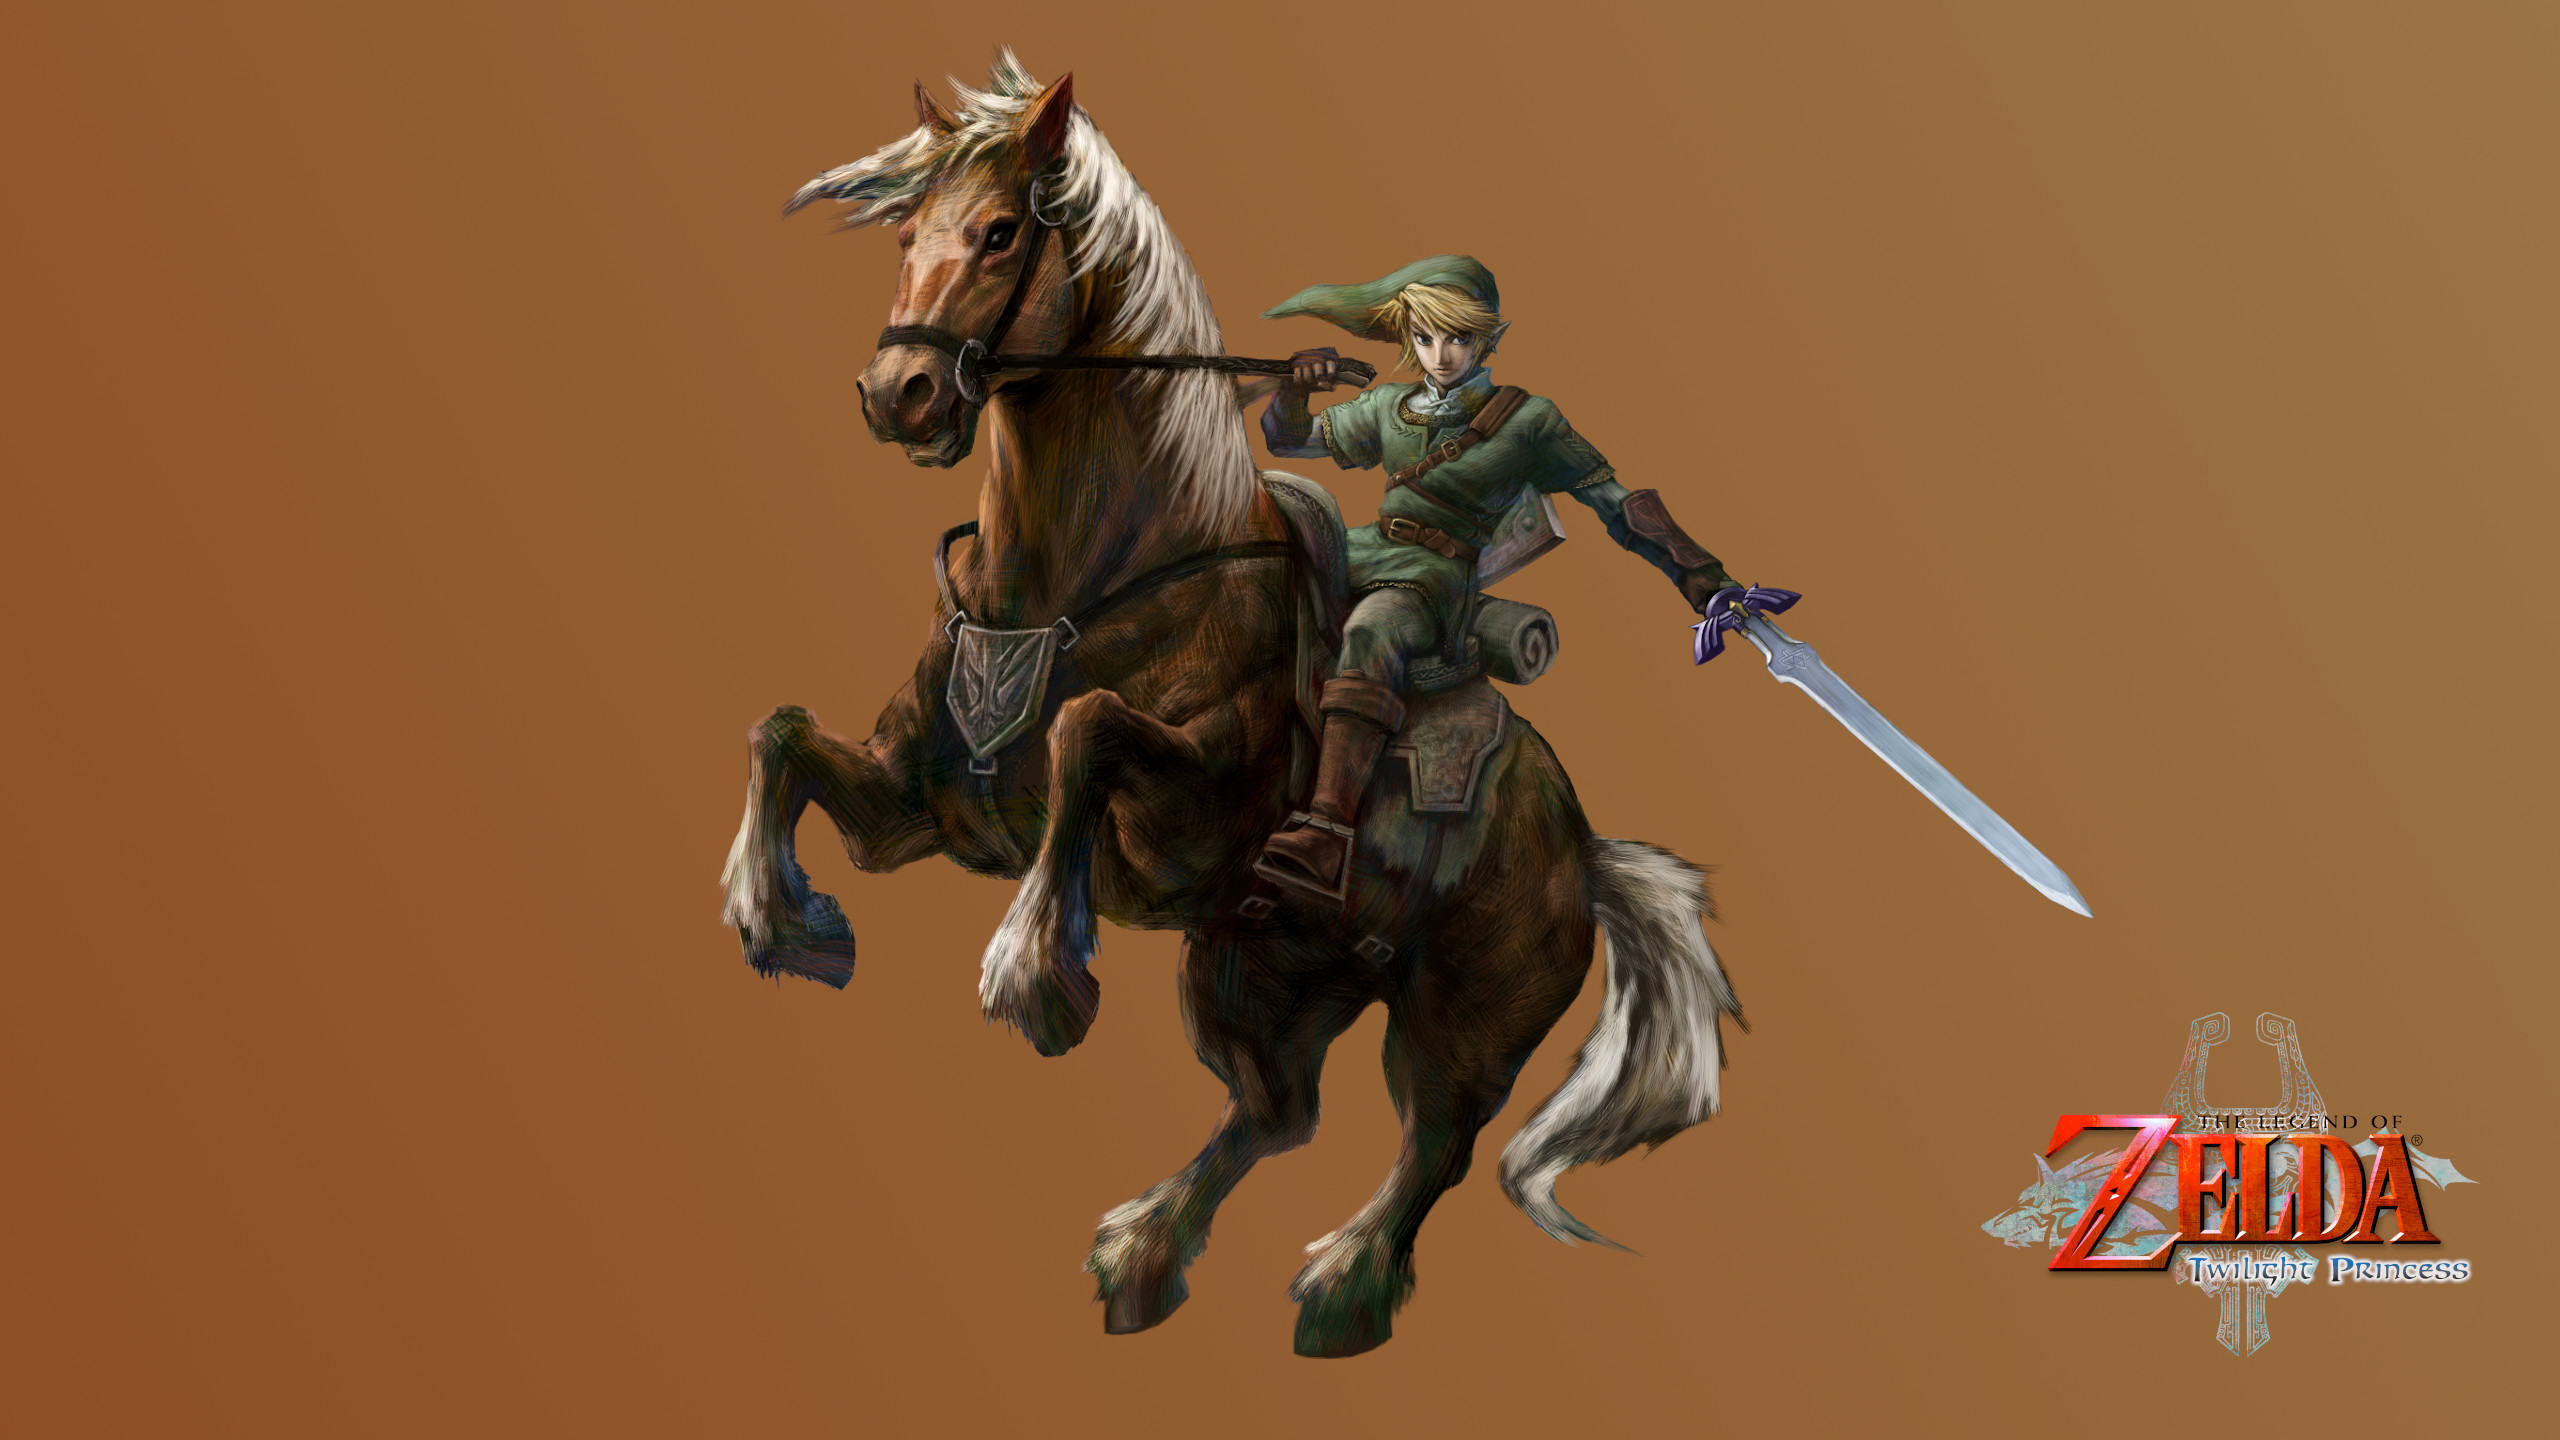 4K 2560X1440 Wallpaper Legend Of Zelda Free